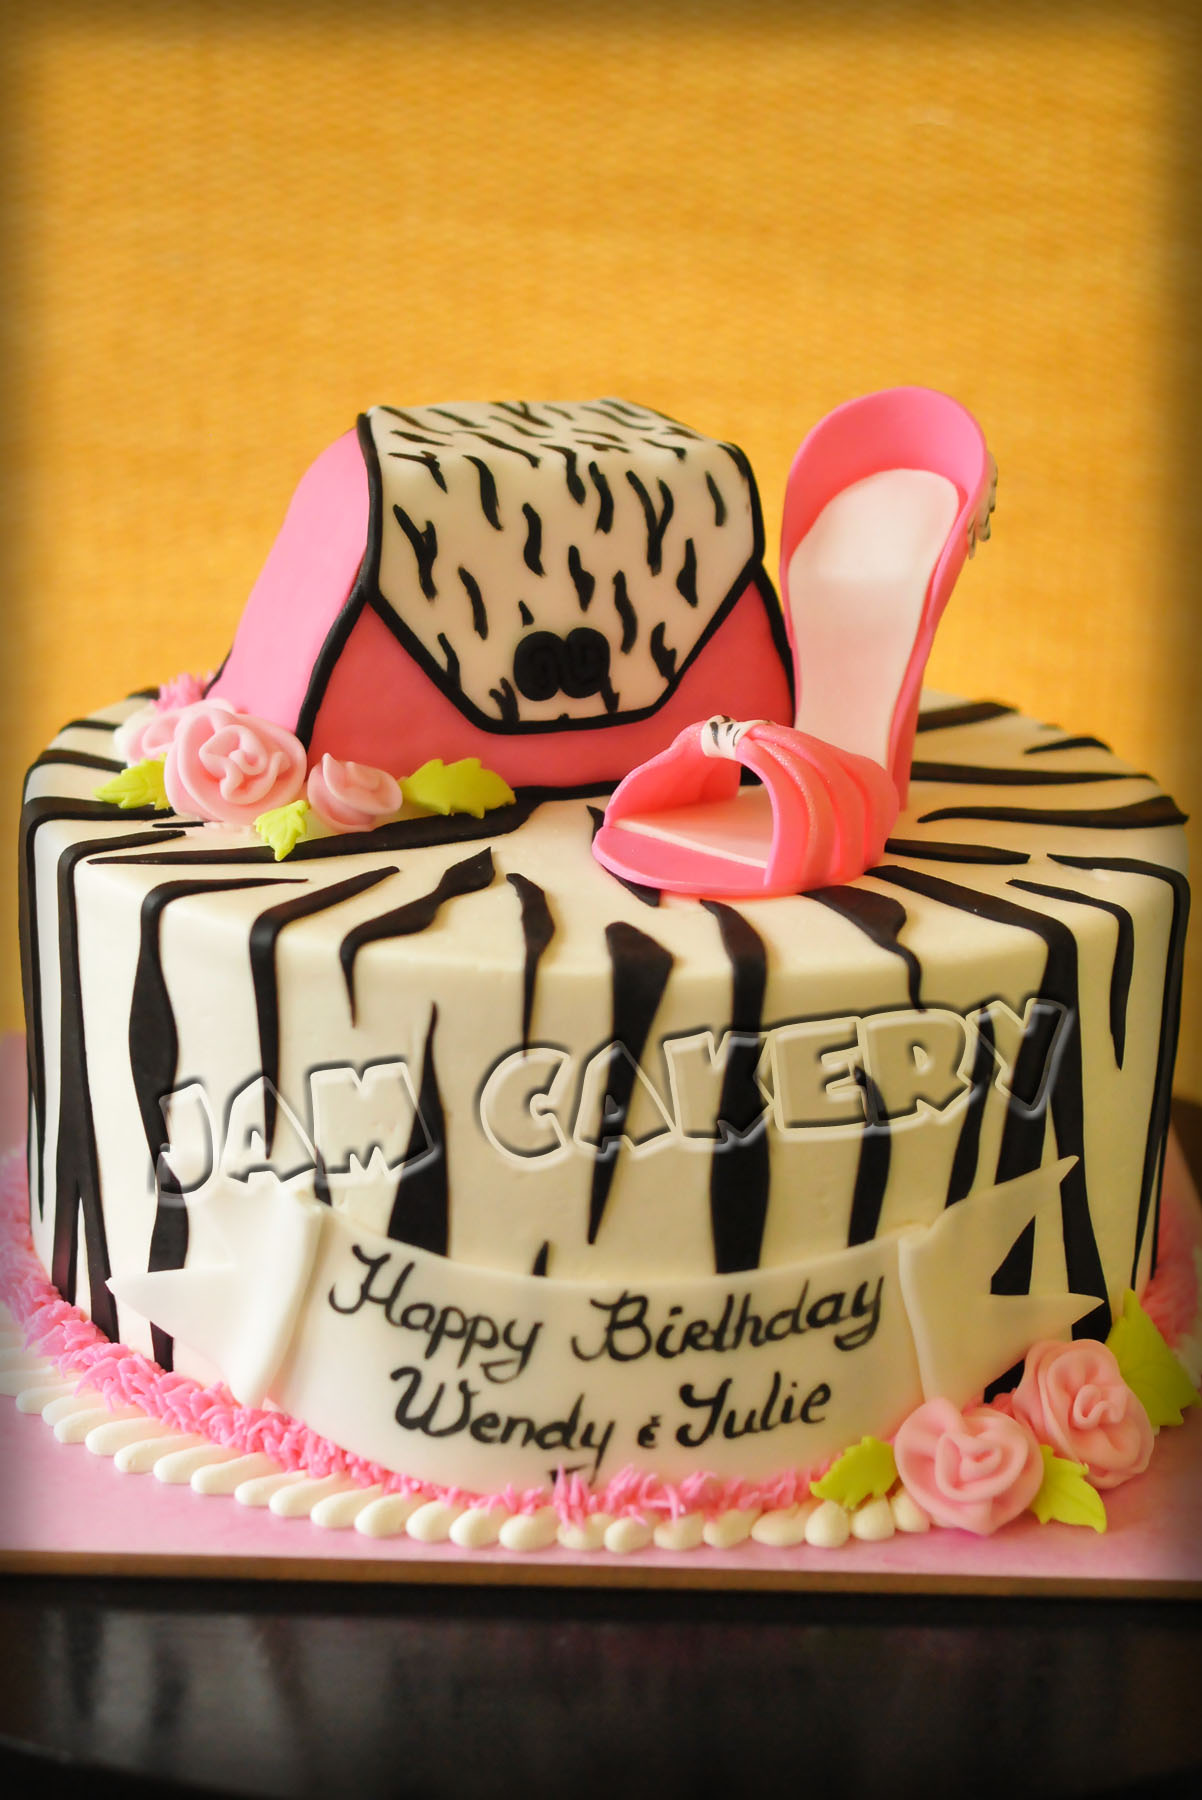 Zebra purse and shoe birthday cake JAM Cakery